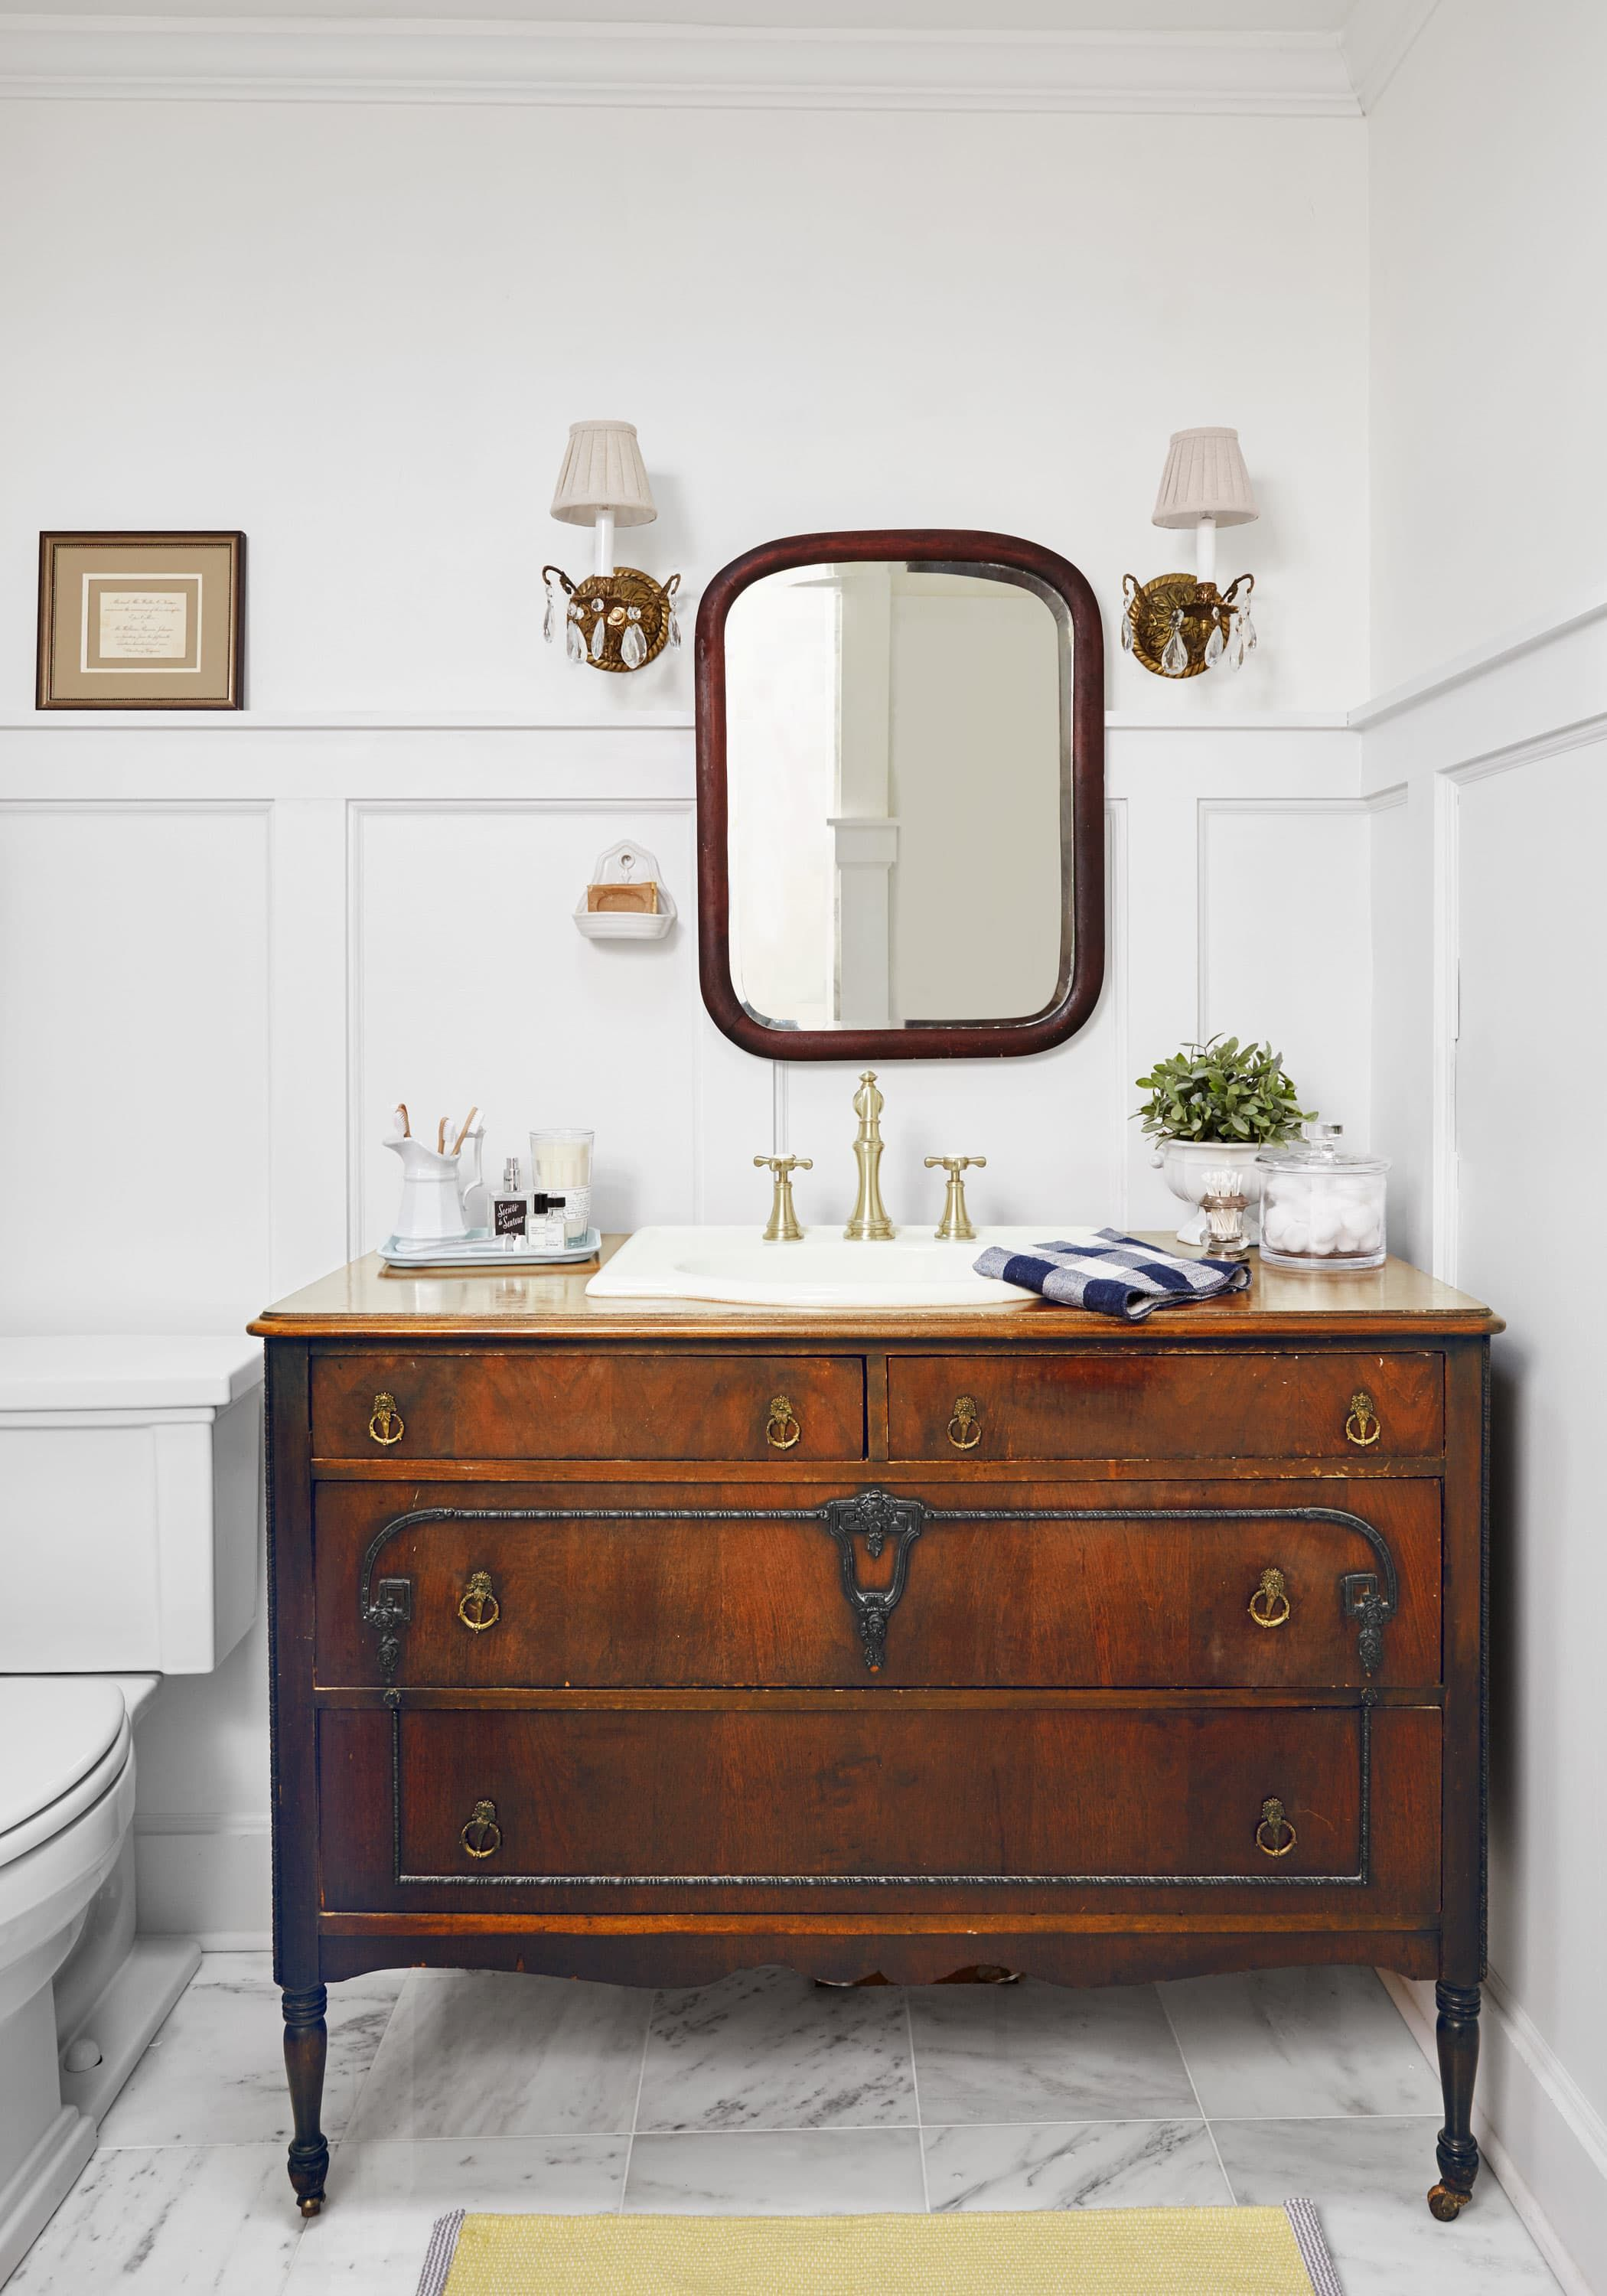 awesome vanities amazing corner vanity of kicle antique bathroom inspirational rounded us best idea